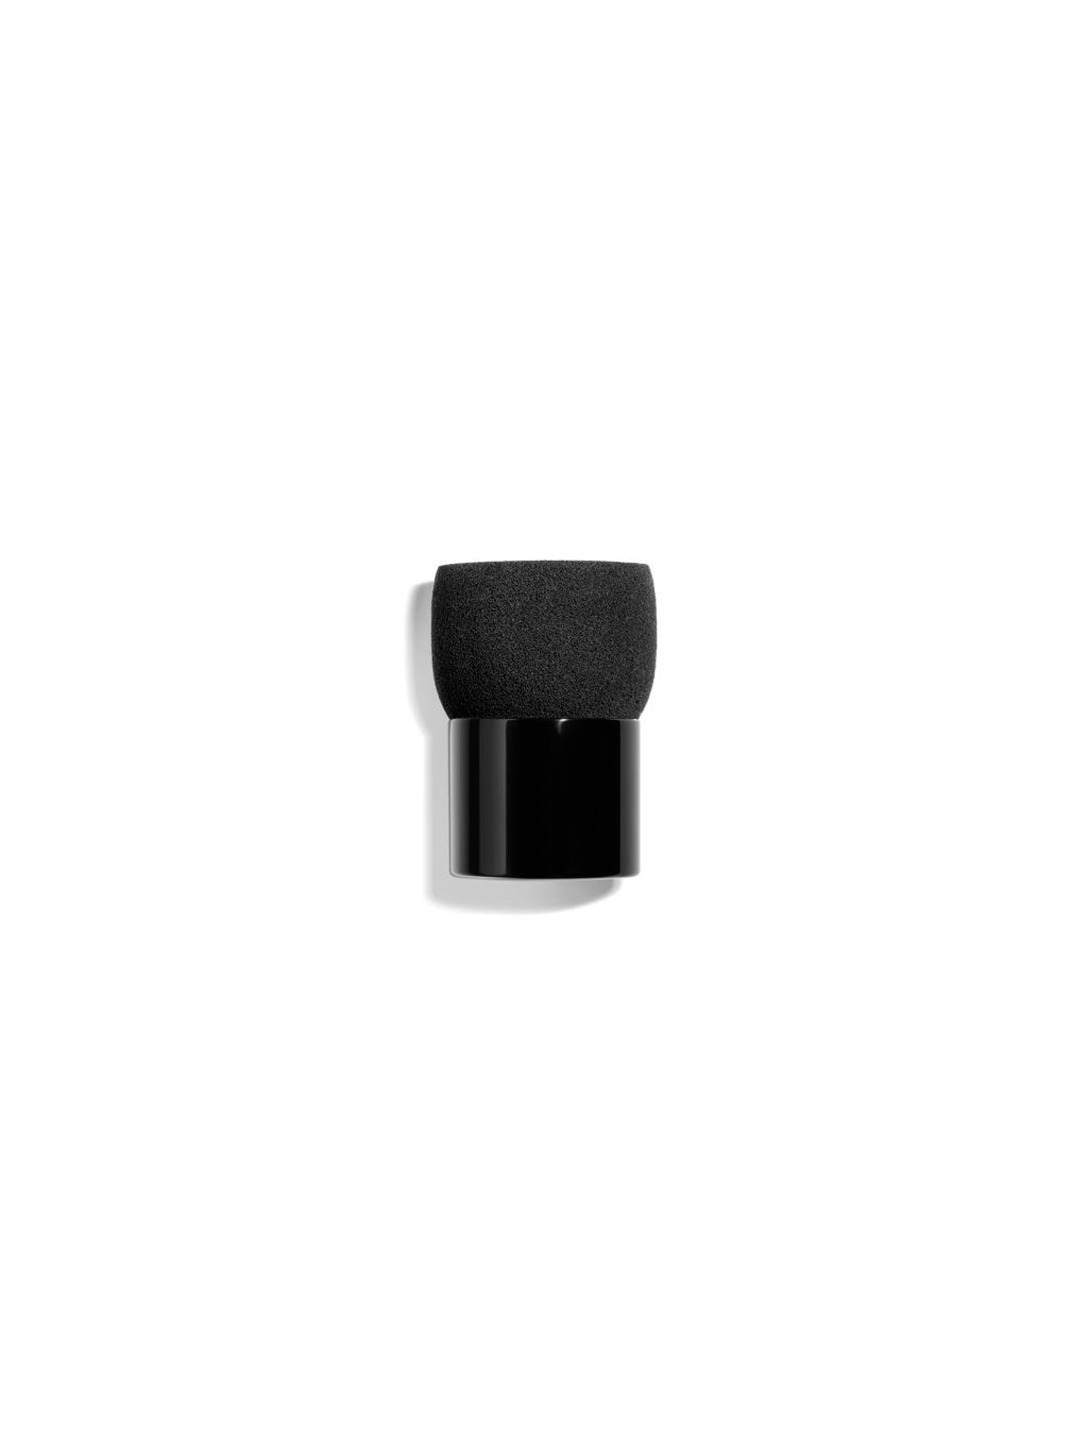 CHANEL Foundation Sponge Brush CHANEL